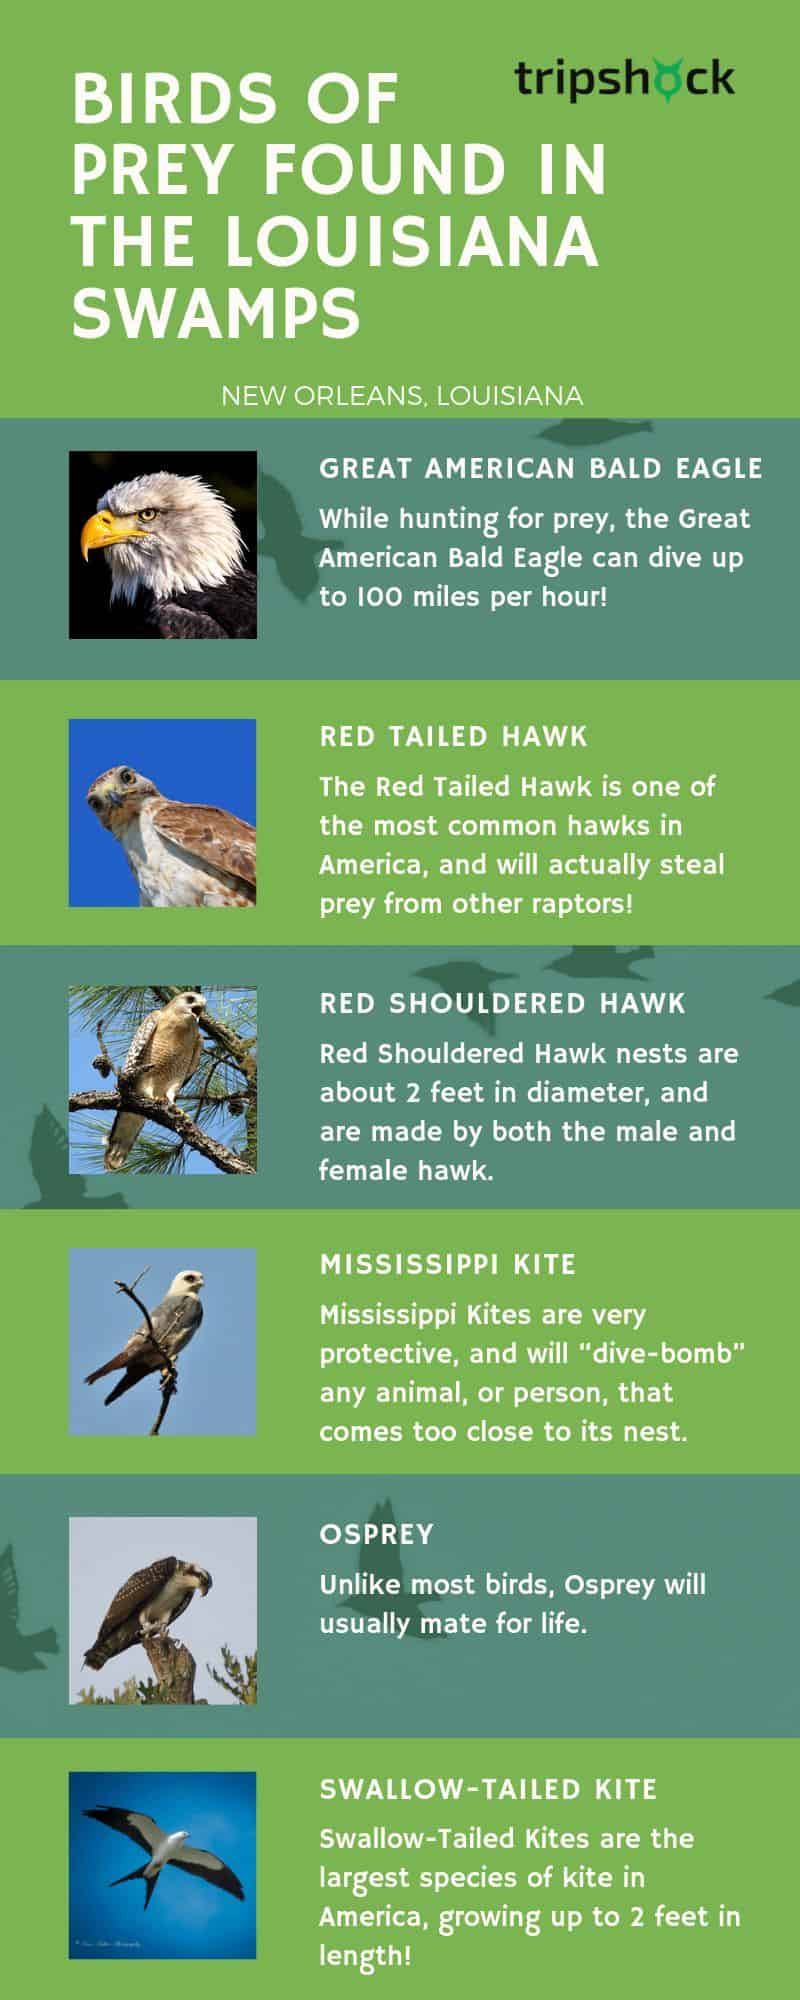 birds of prey found in the louisiana swamps